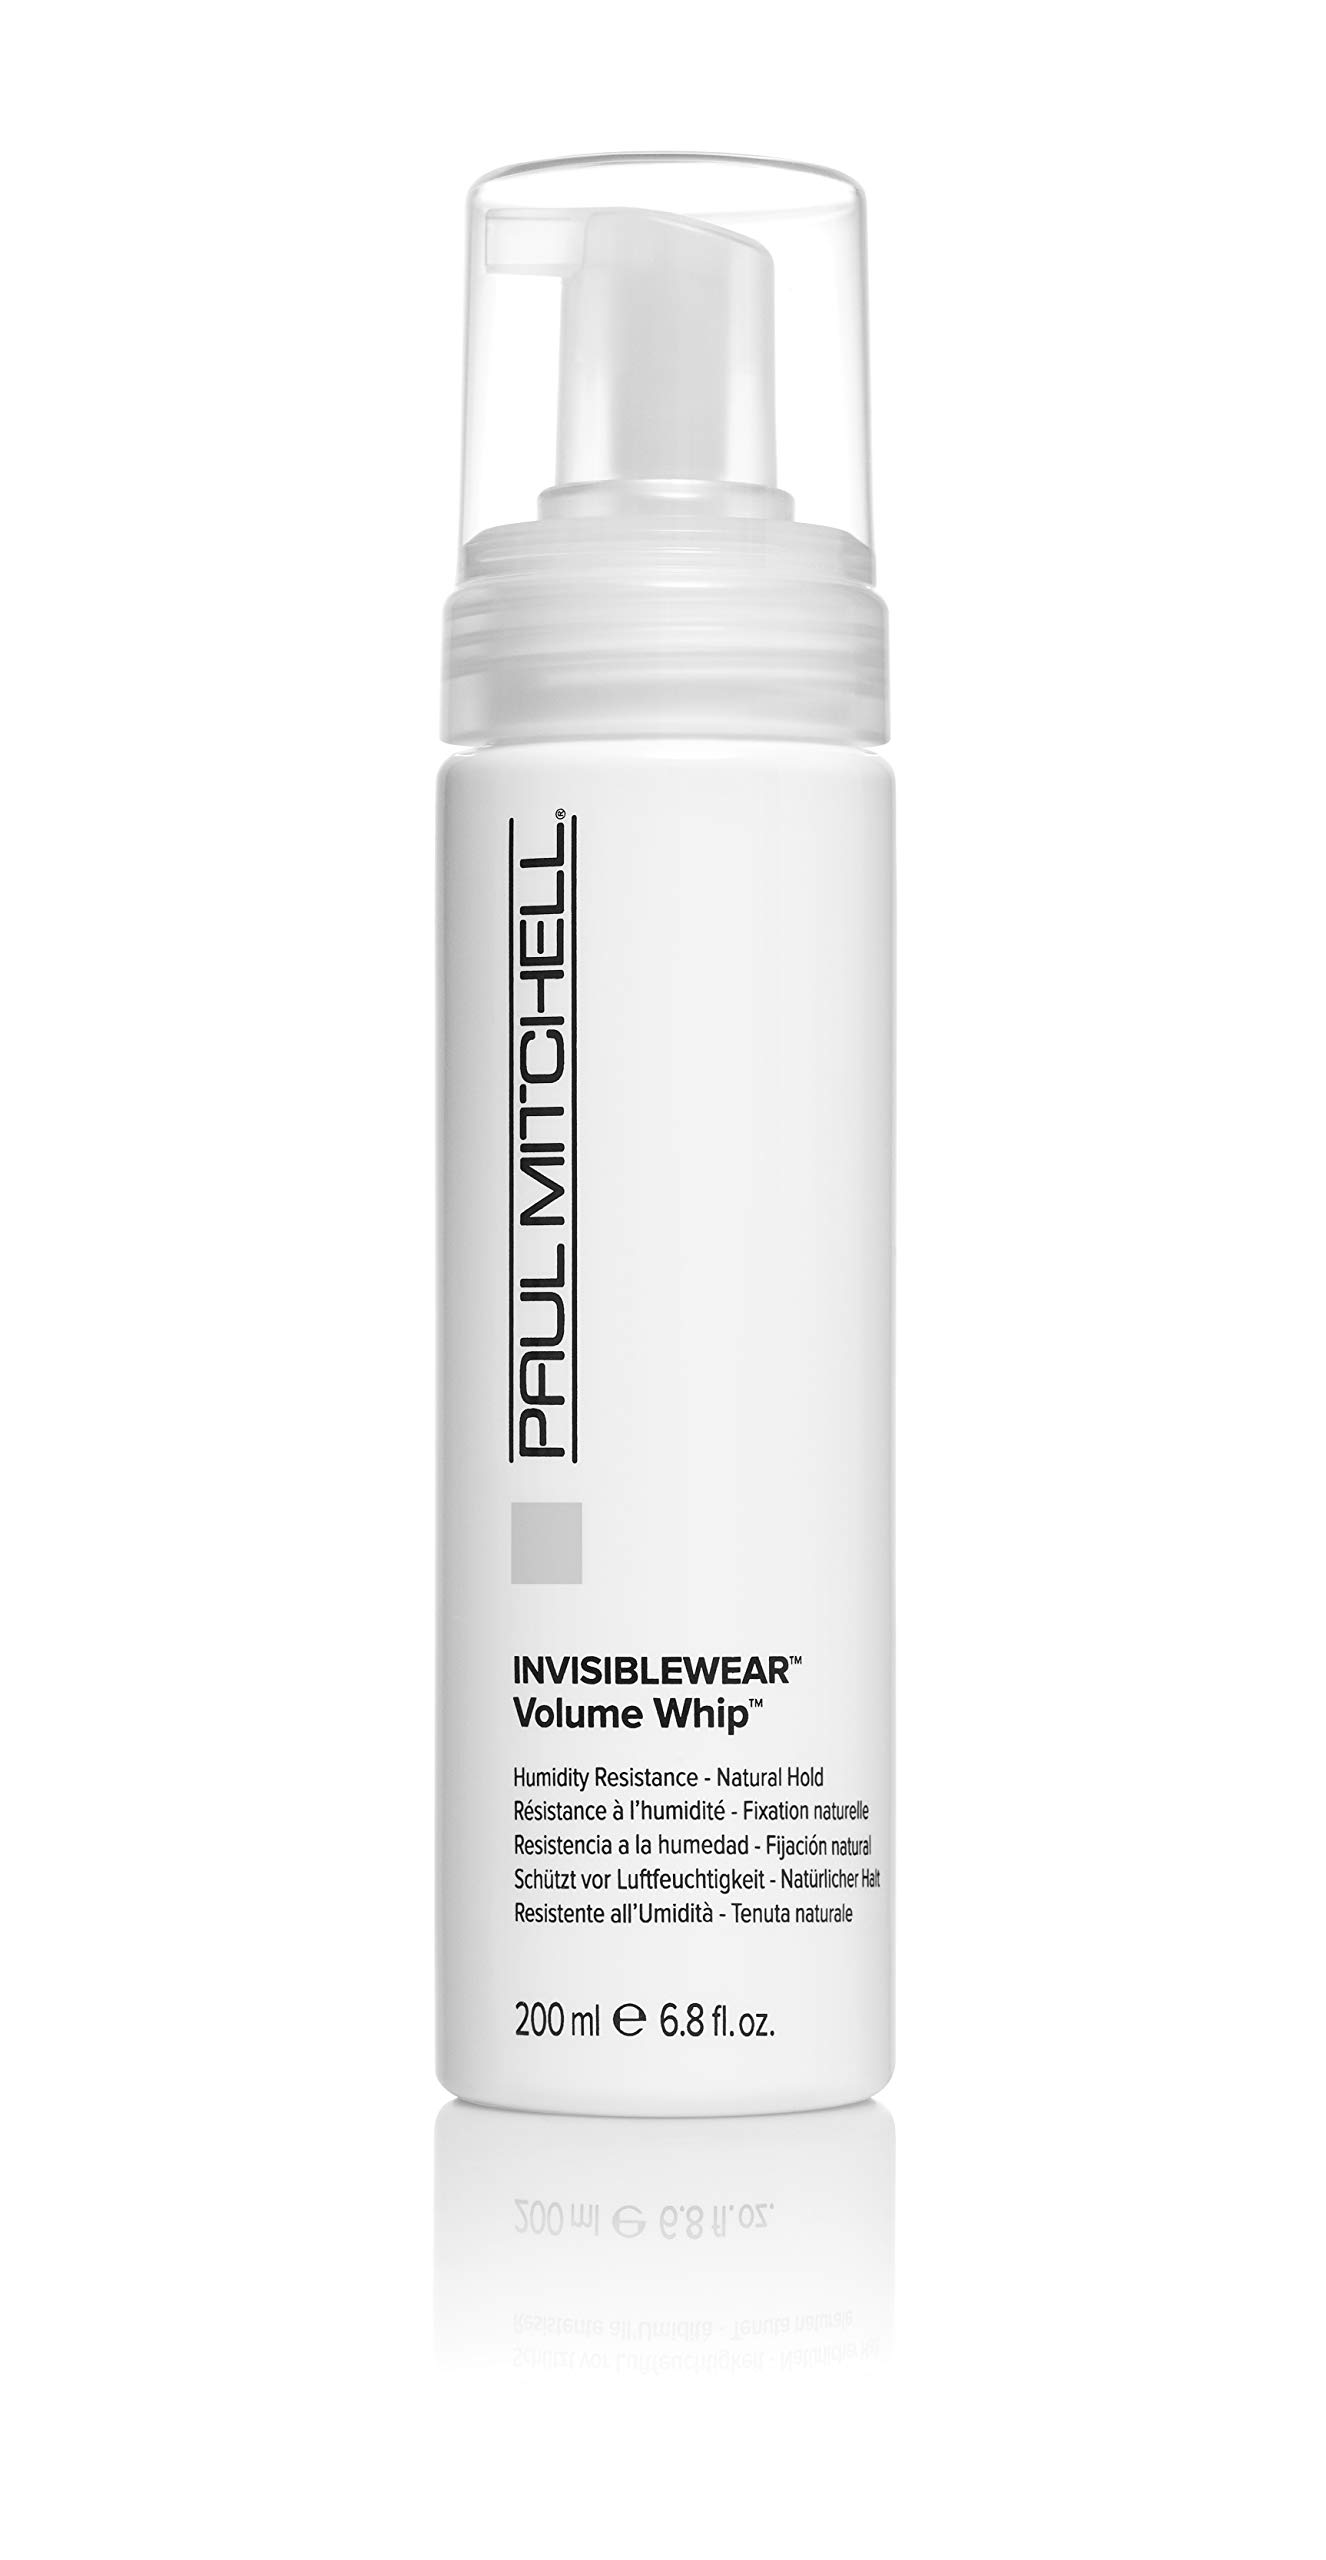 Paul Mitchell INVISIBLEWEAR Volume Whip Styling Mousse,6.8 Fl Oz by Paul Mitchell